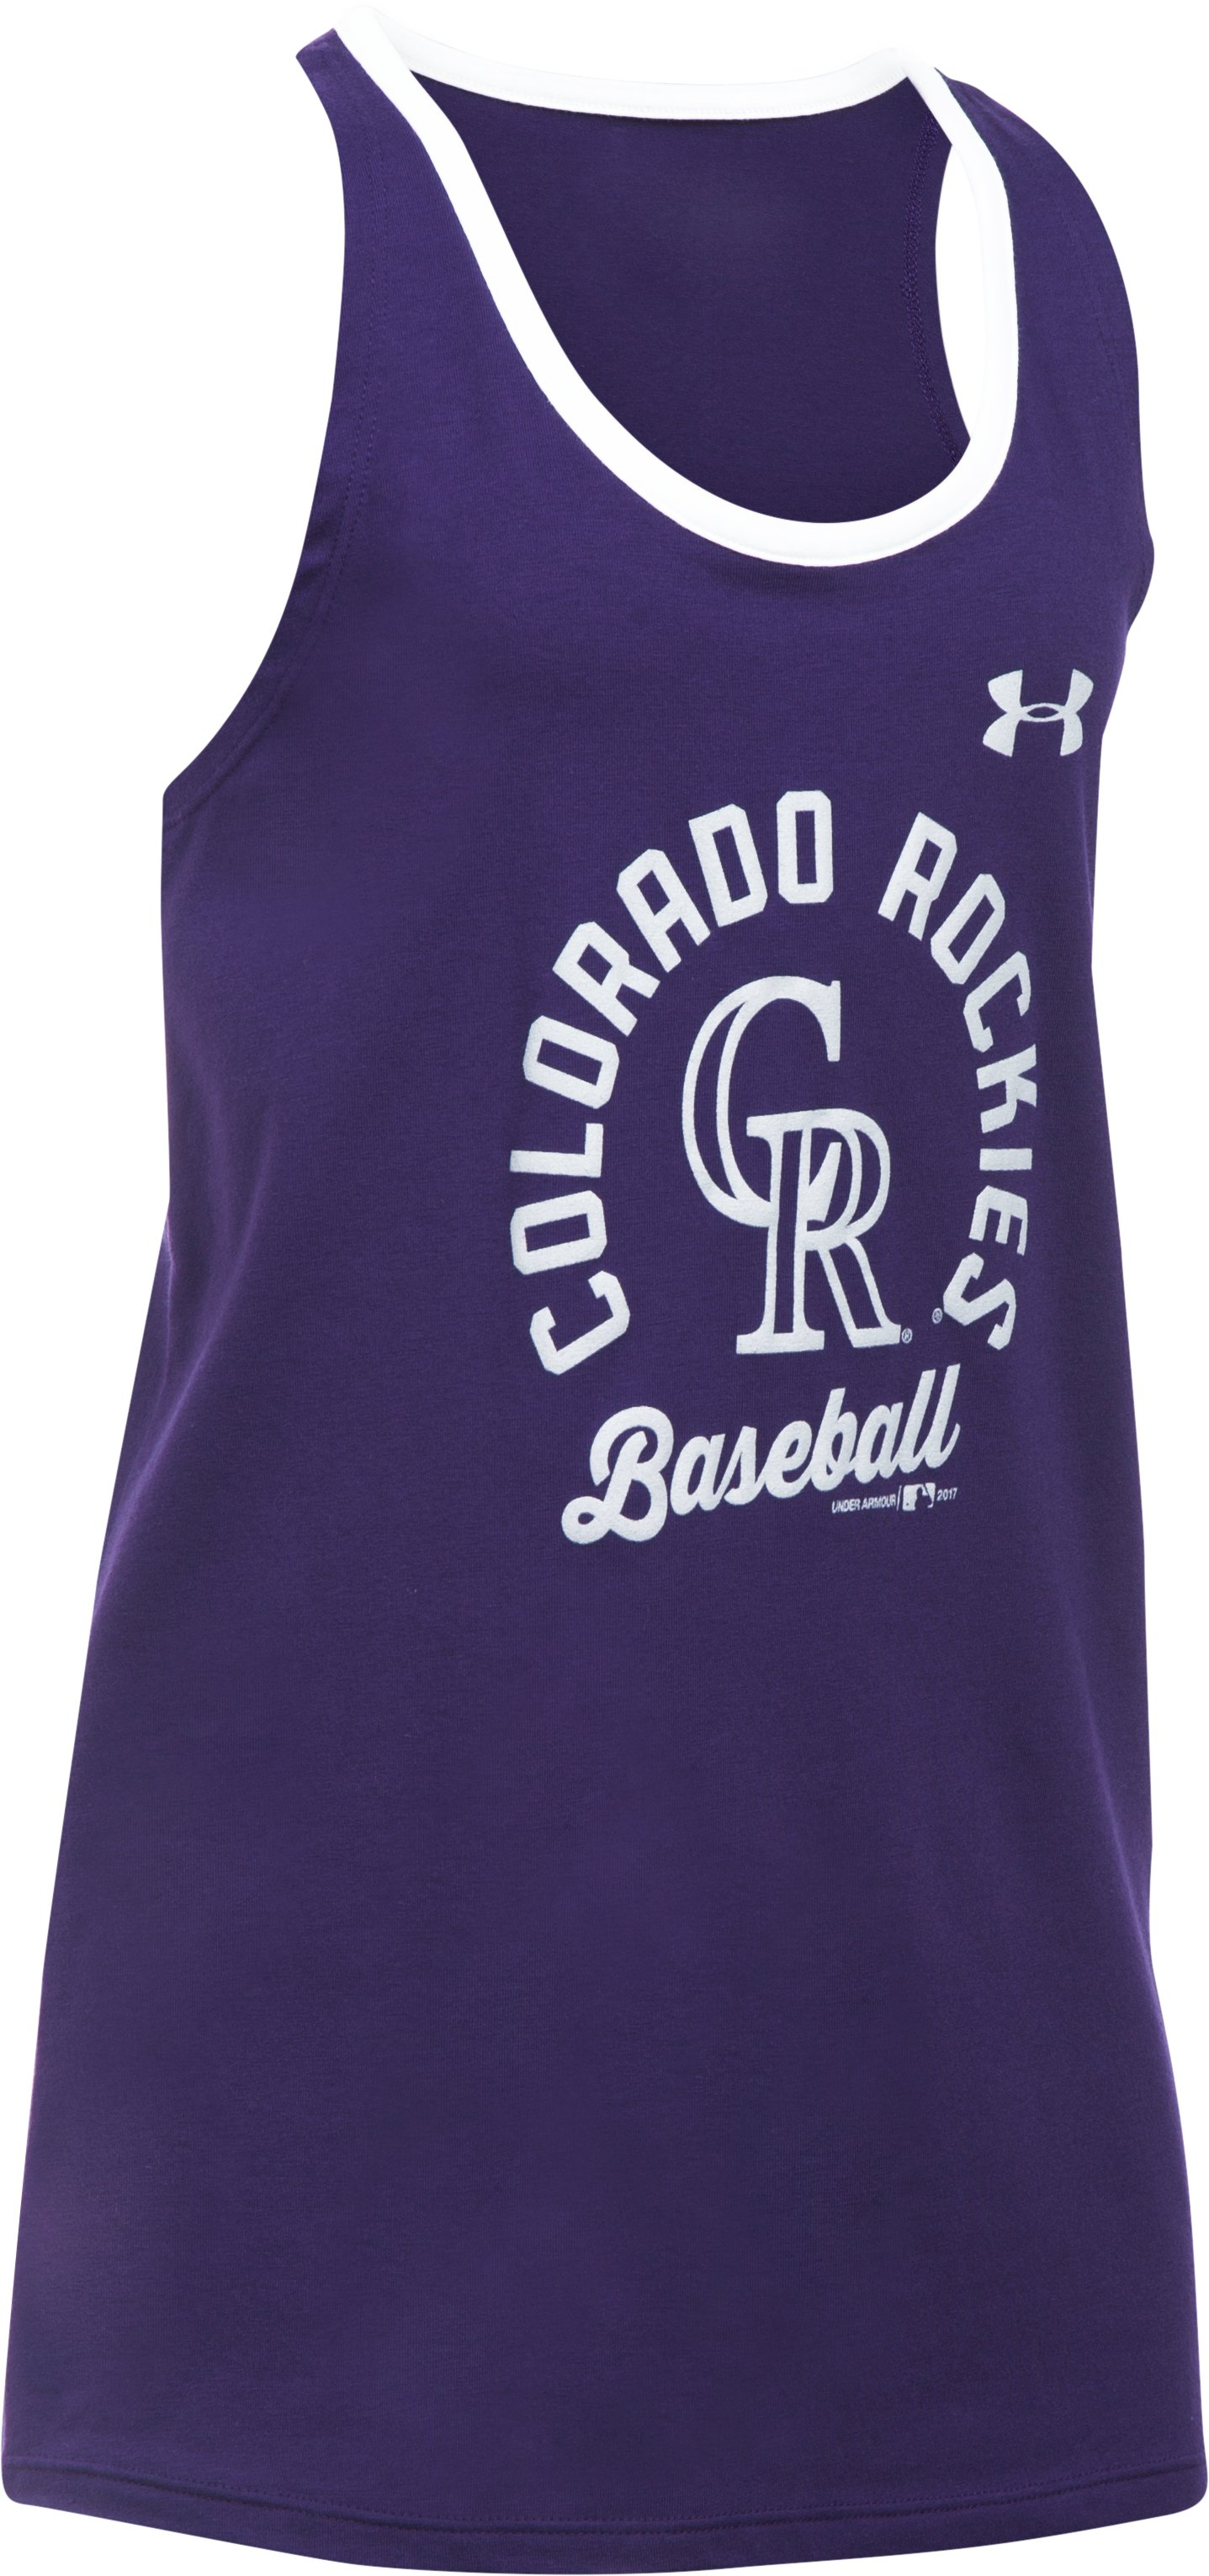 Girls' Colorado Rockies Ringer Tank, Purple